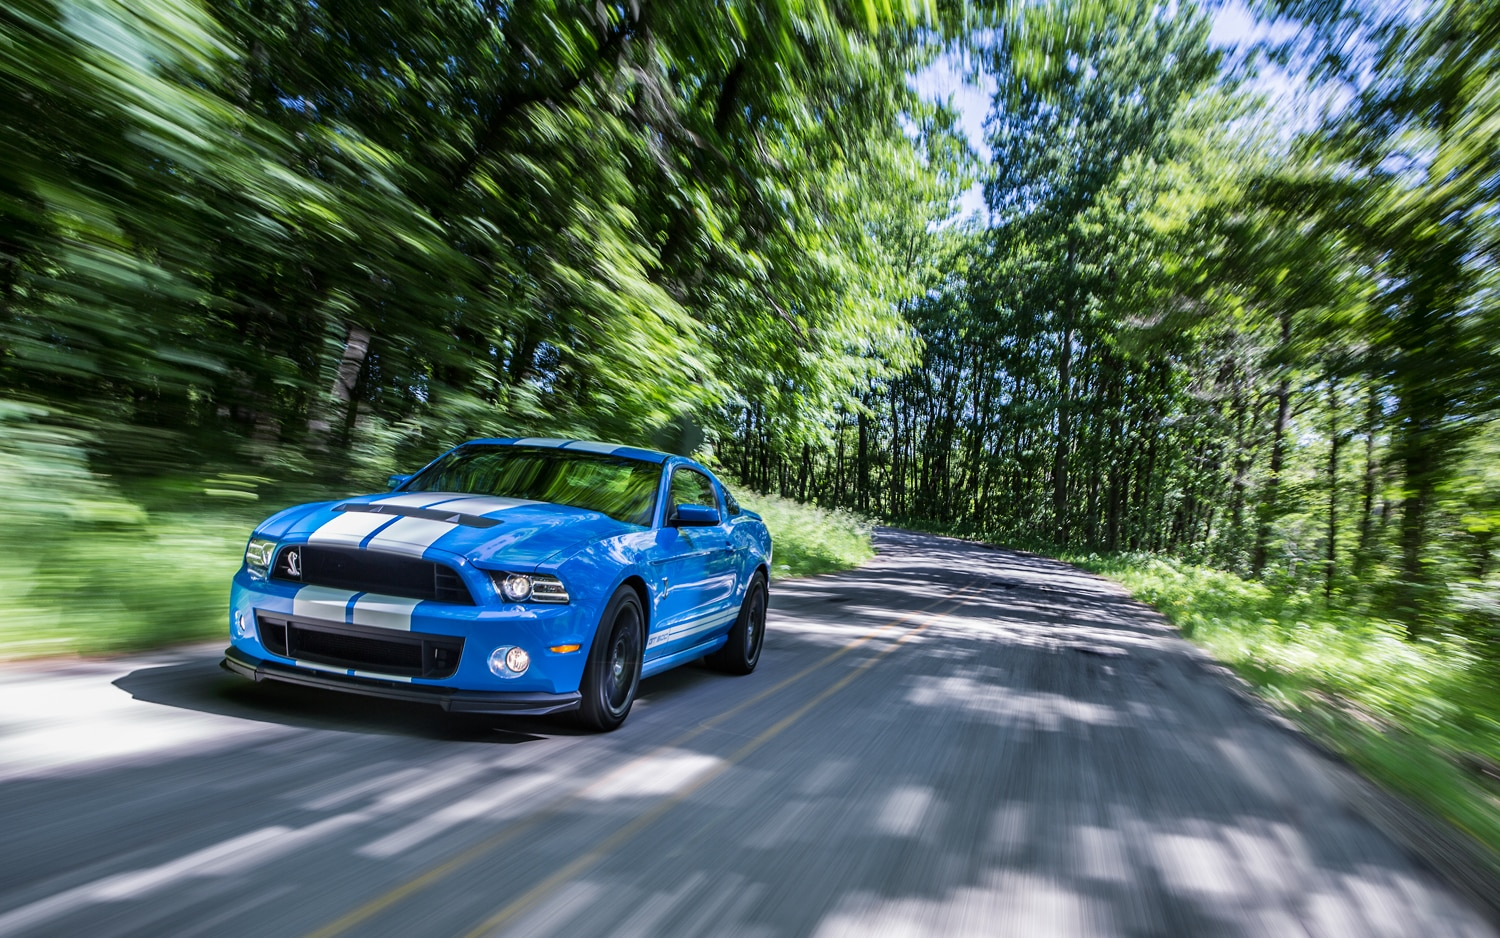 Here S How Much The 2020 Ford Mustang Shelby Gt500 Will